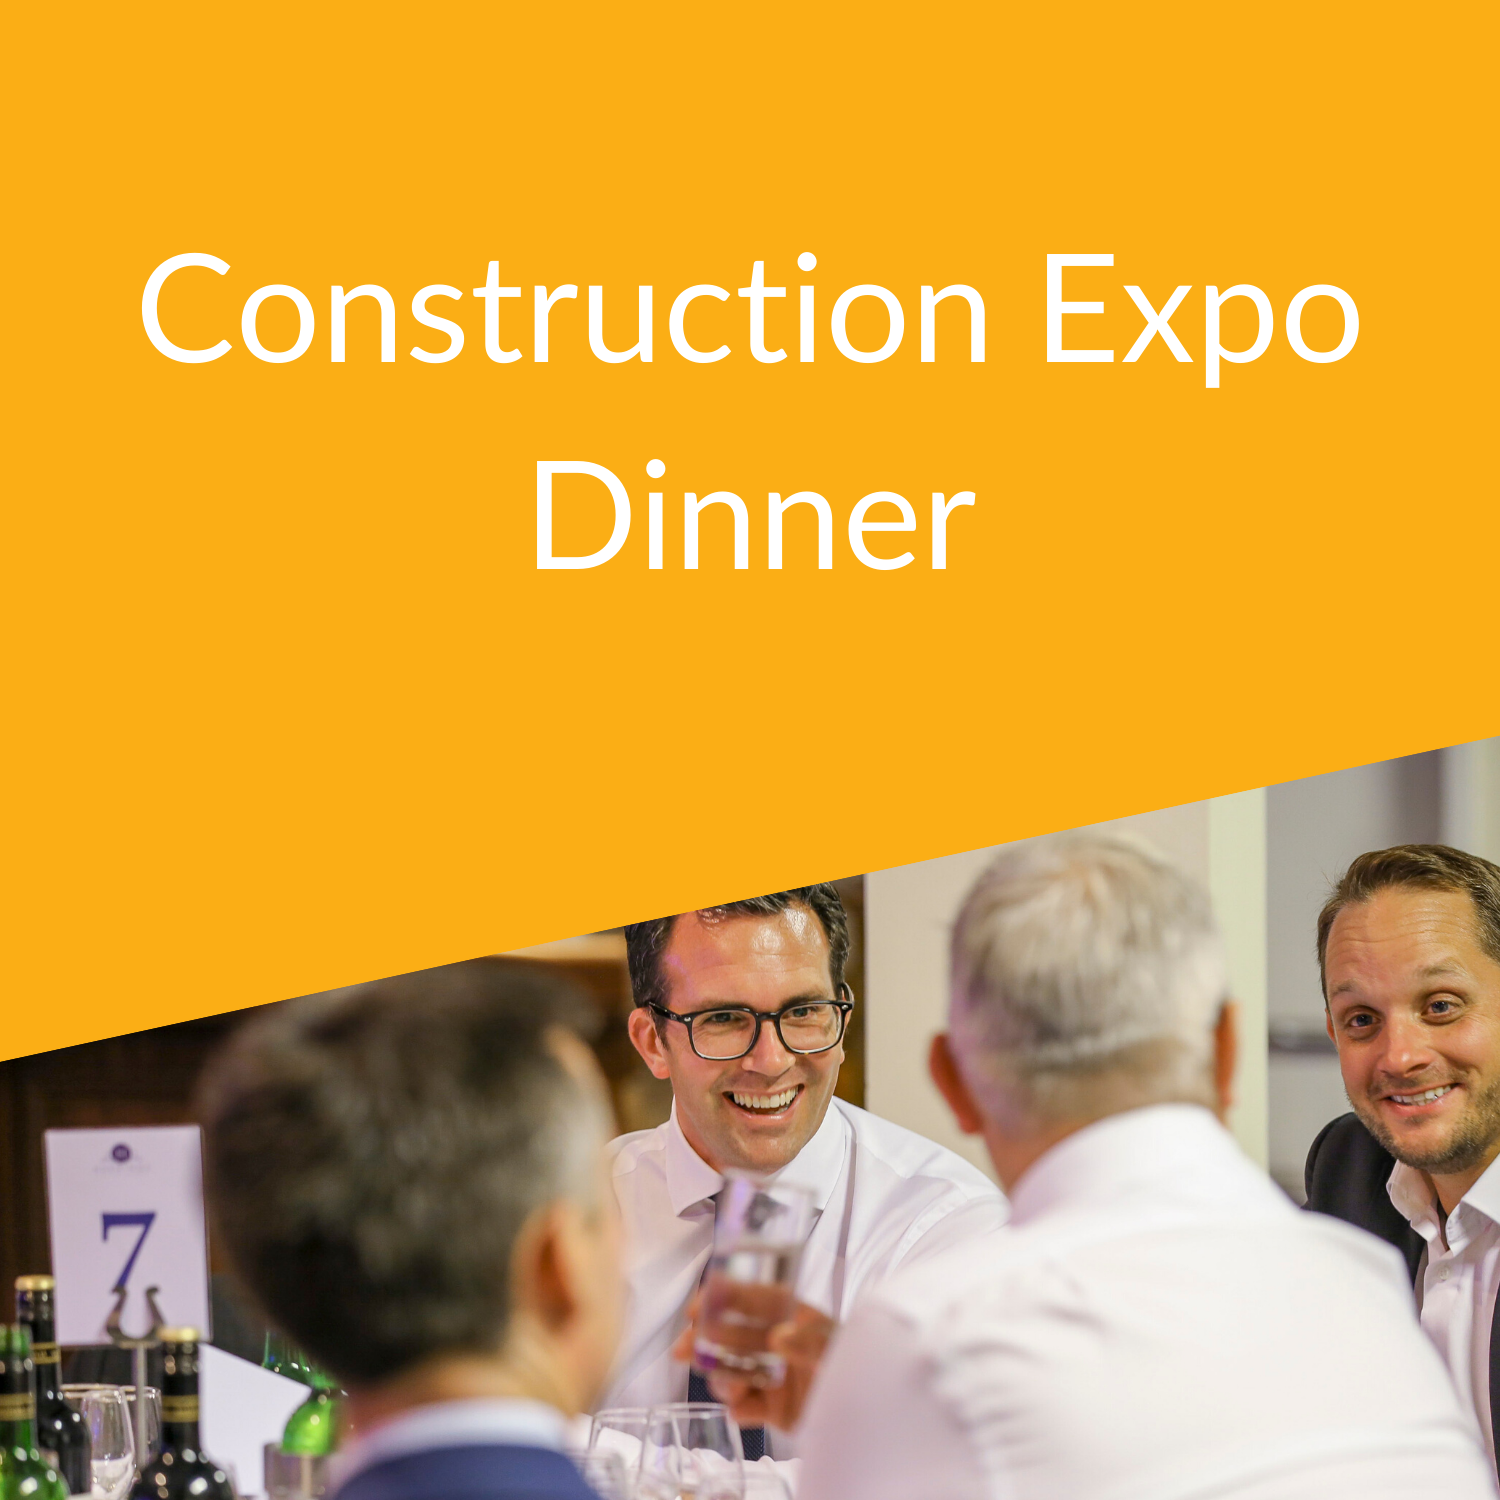 South East Construction Expo Dinner